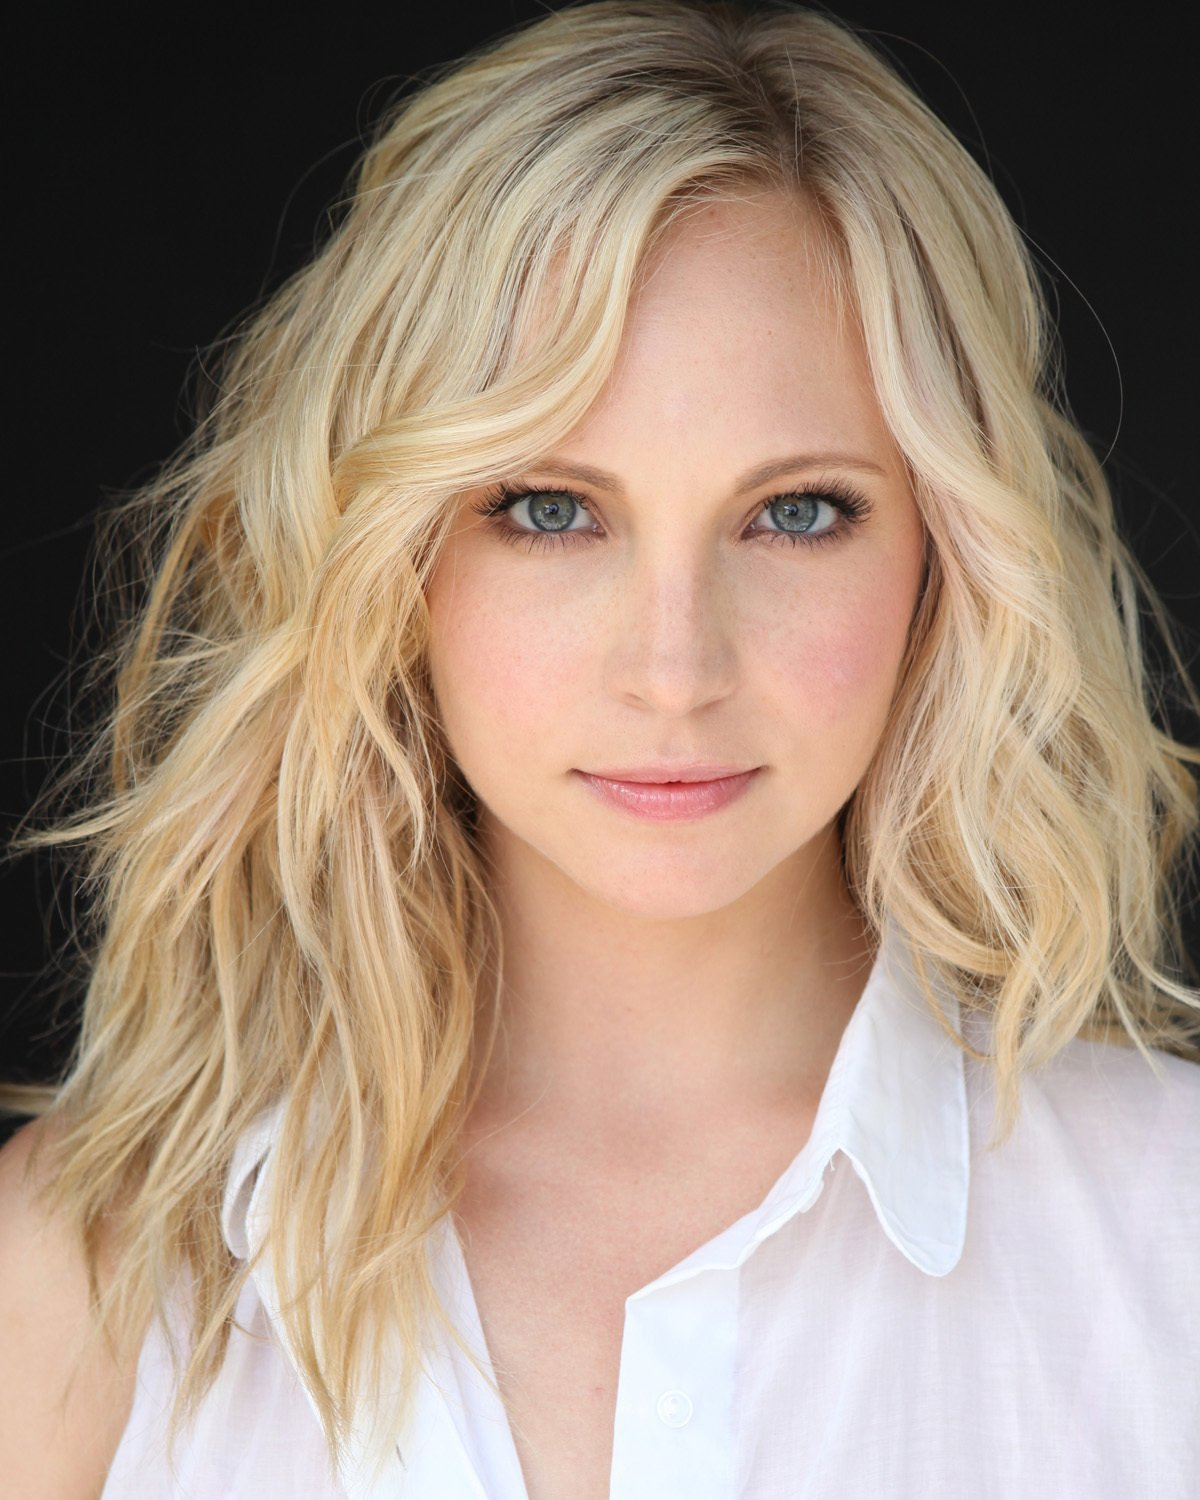 http://images4.fanpop.com/image/photos/16400000/New-HQ-Headshot-candice-accola-16474223-1200-1500.jpg